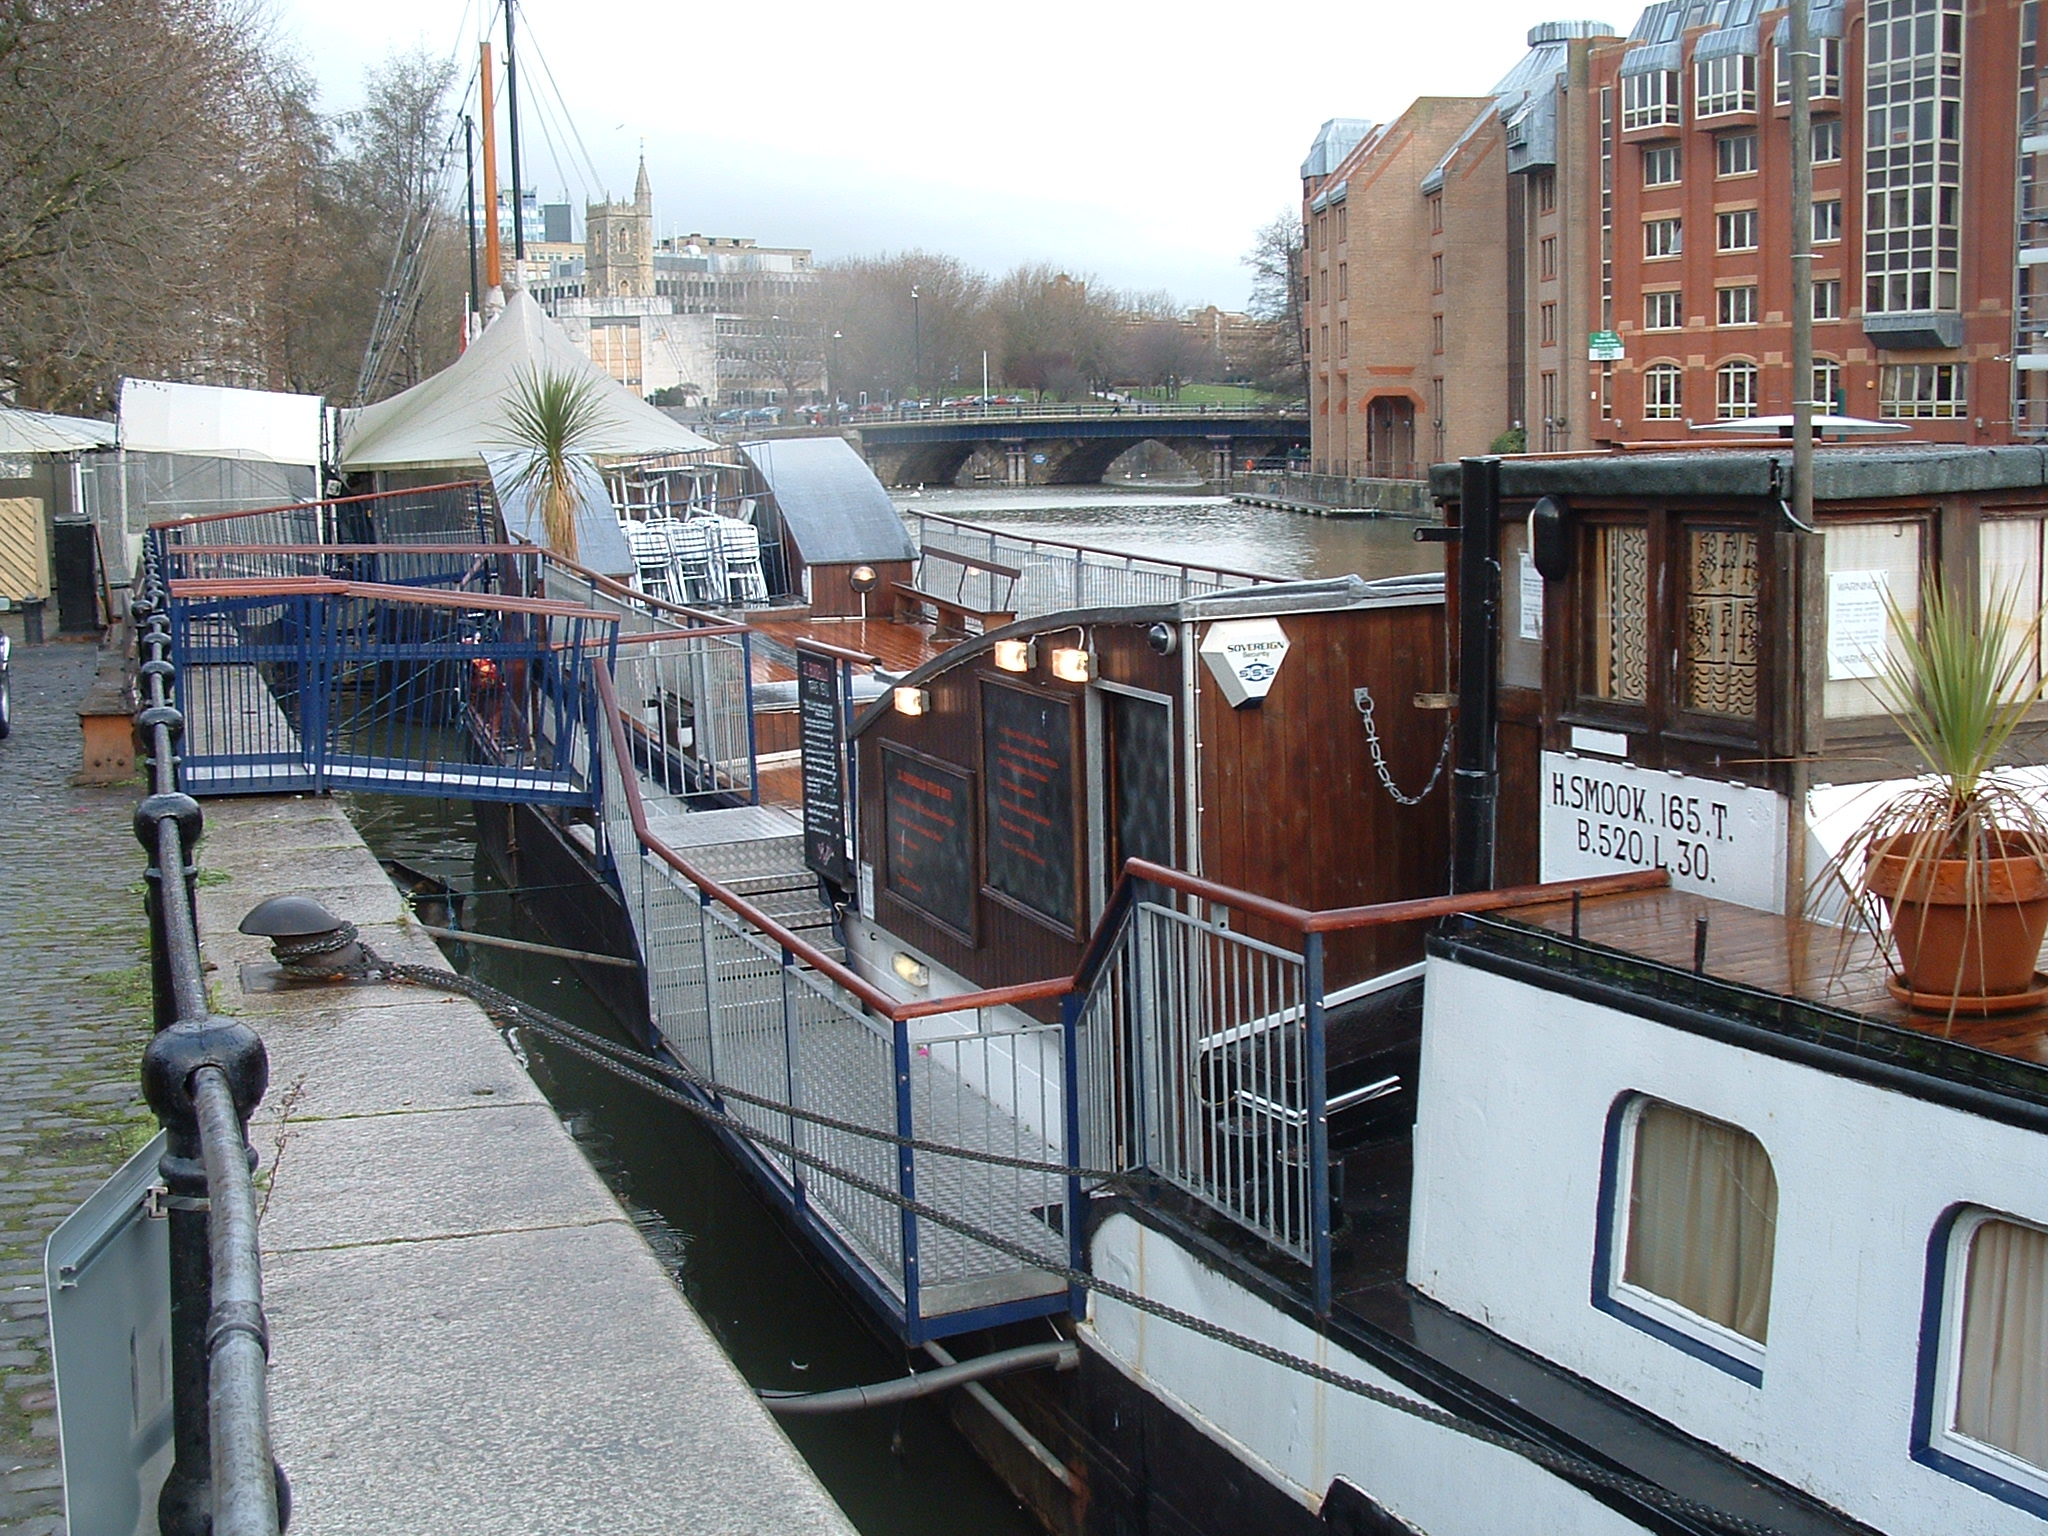 IL BORDELLO was the notorious barge members only venue in Bristol which provided the VIP hospitality and catering for renown Bristol music & media events.